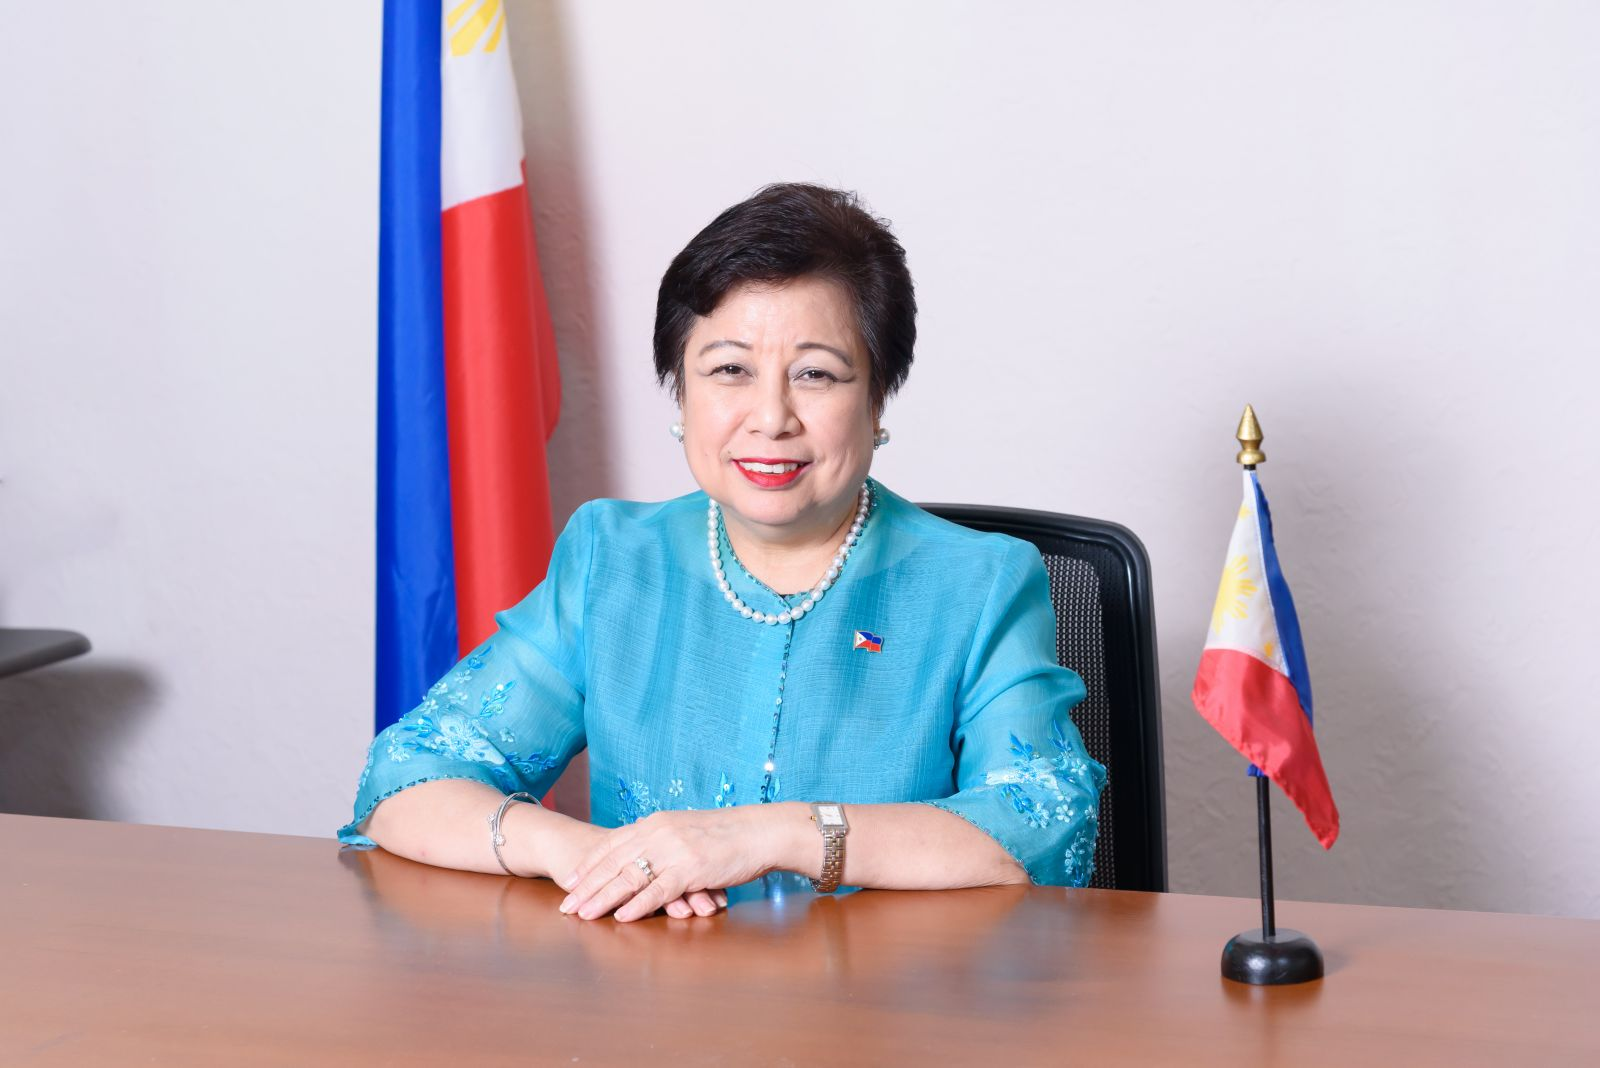 Thriving together Her Excellency Mary Jo A Bernardo-Aragon, the Philippines Ambassador, reflects on a long history of trade and cultural exchanges